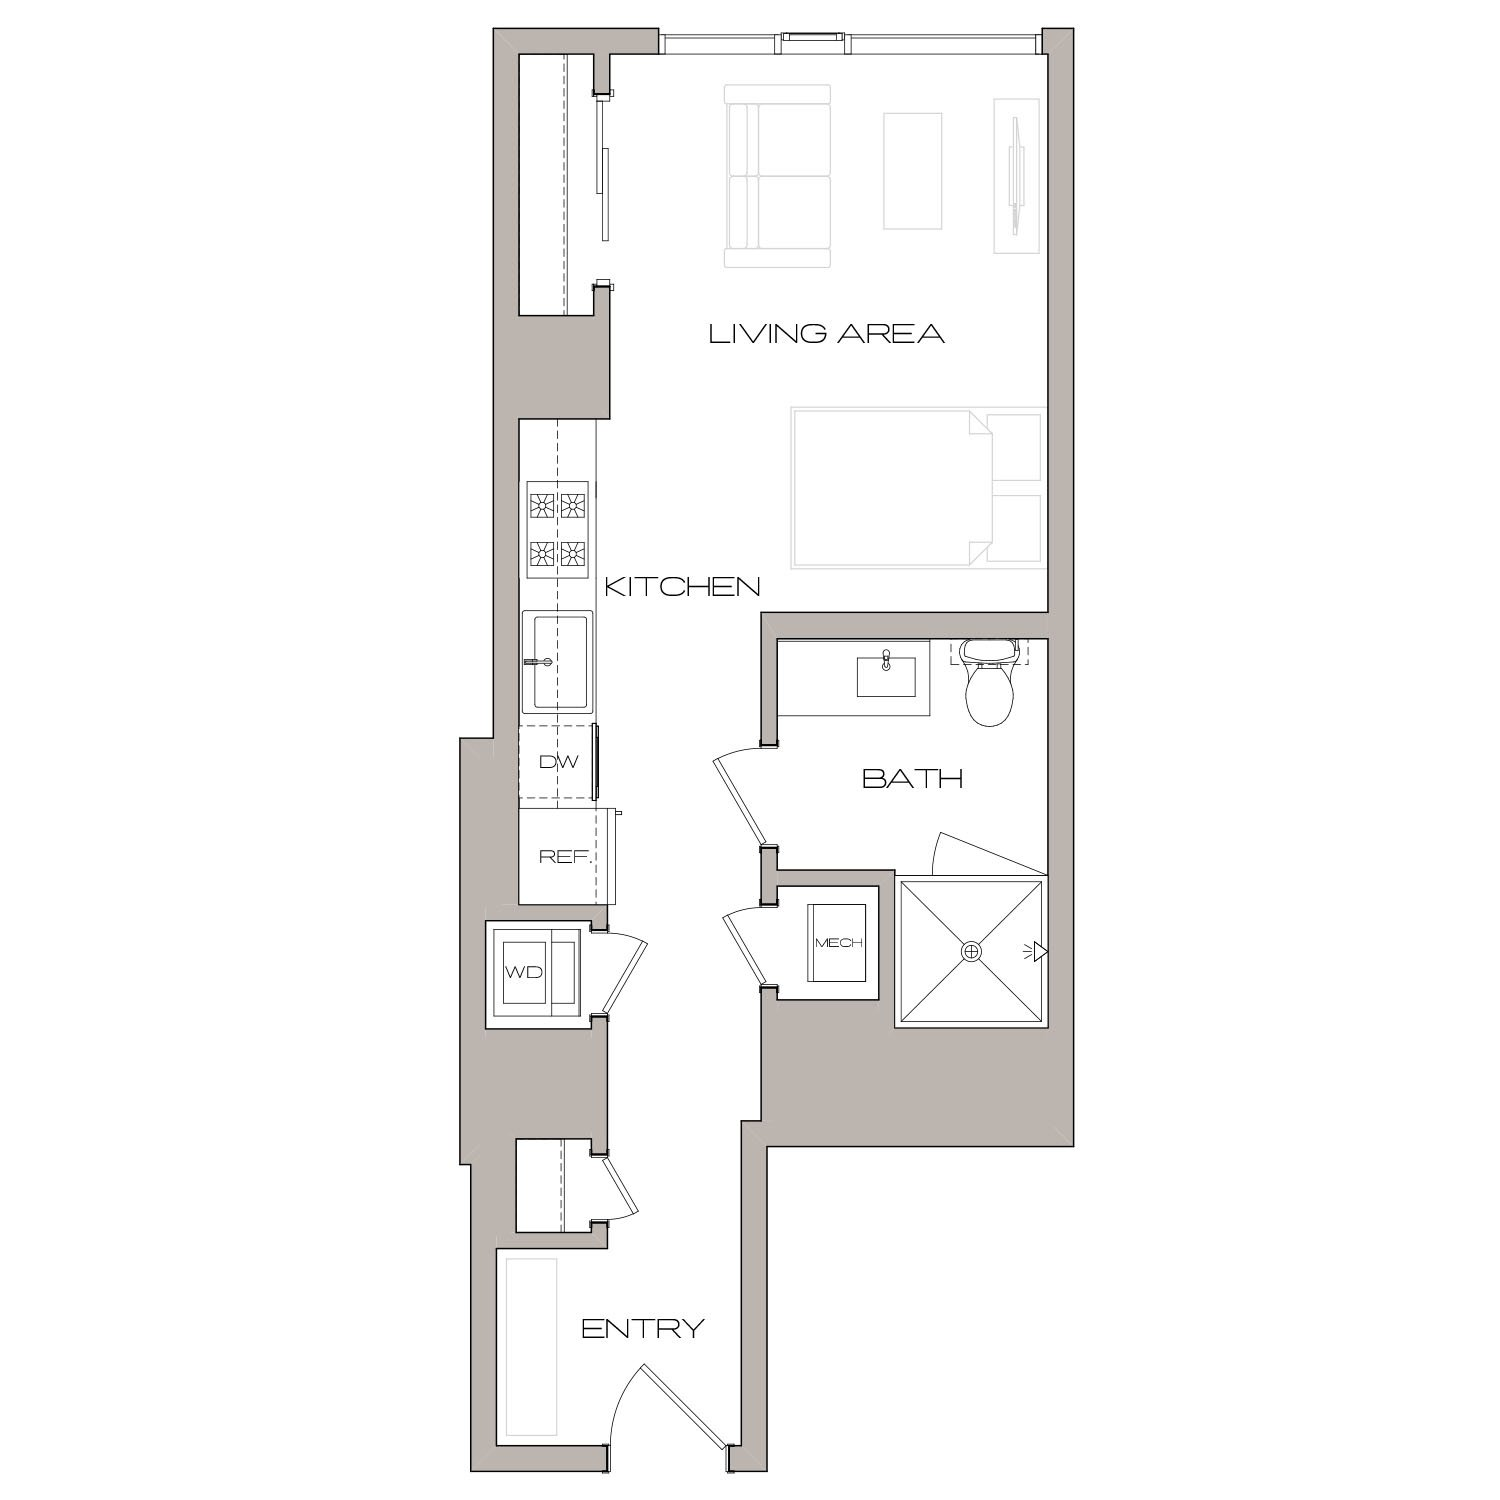 S A floor plan diagram. A studio apartment with one bathroom, an open kitchen and living area, and a washer dryer.